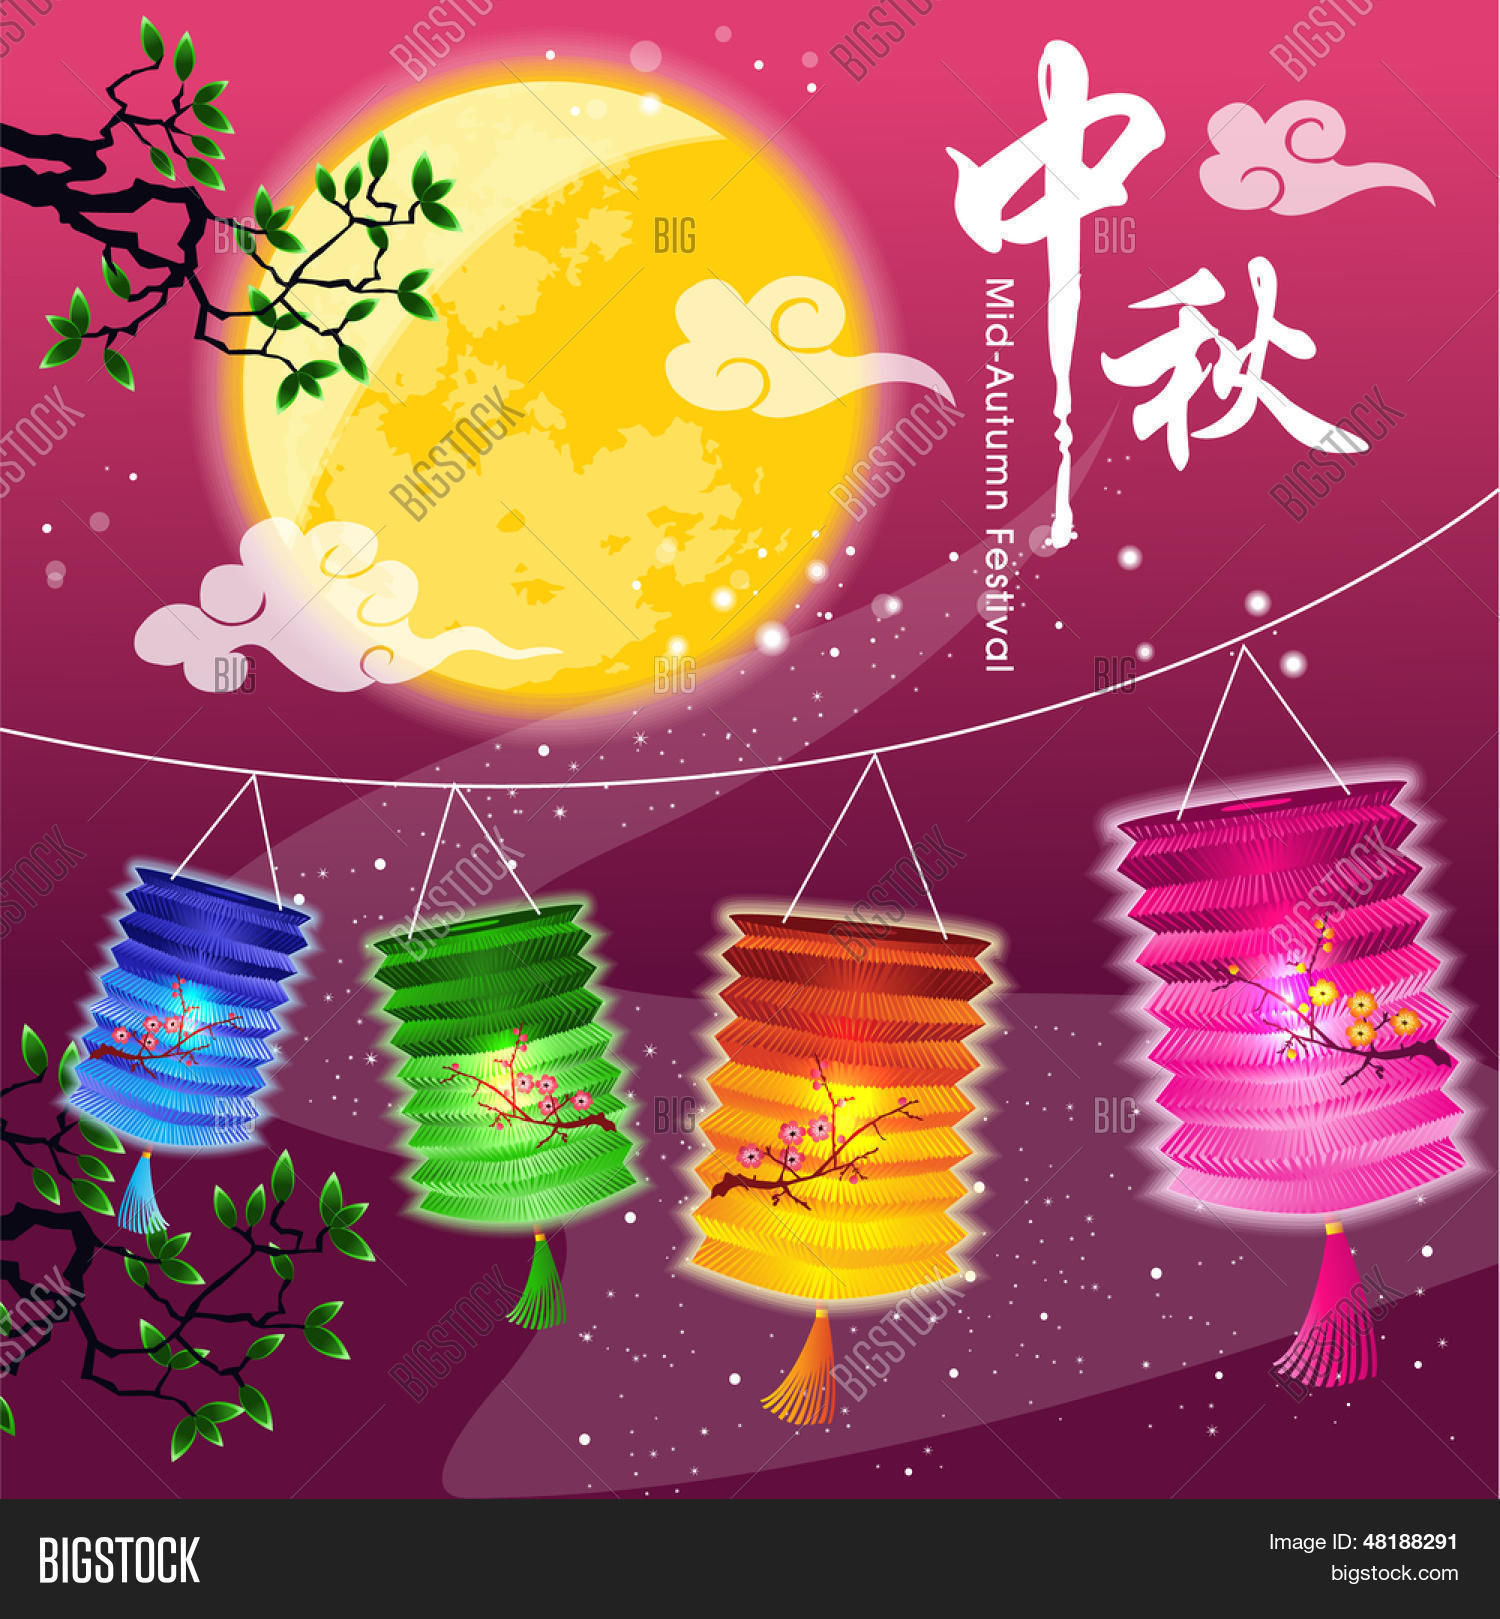 Mid Autumn Festival Vector & Photo (Free Trial) | Bigstock